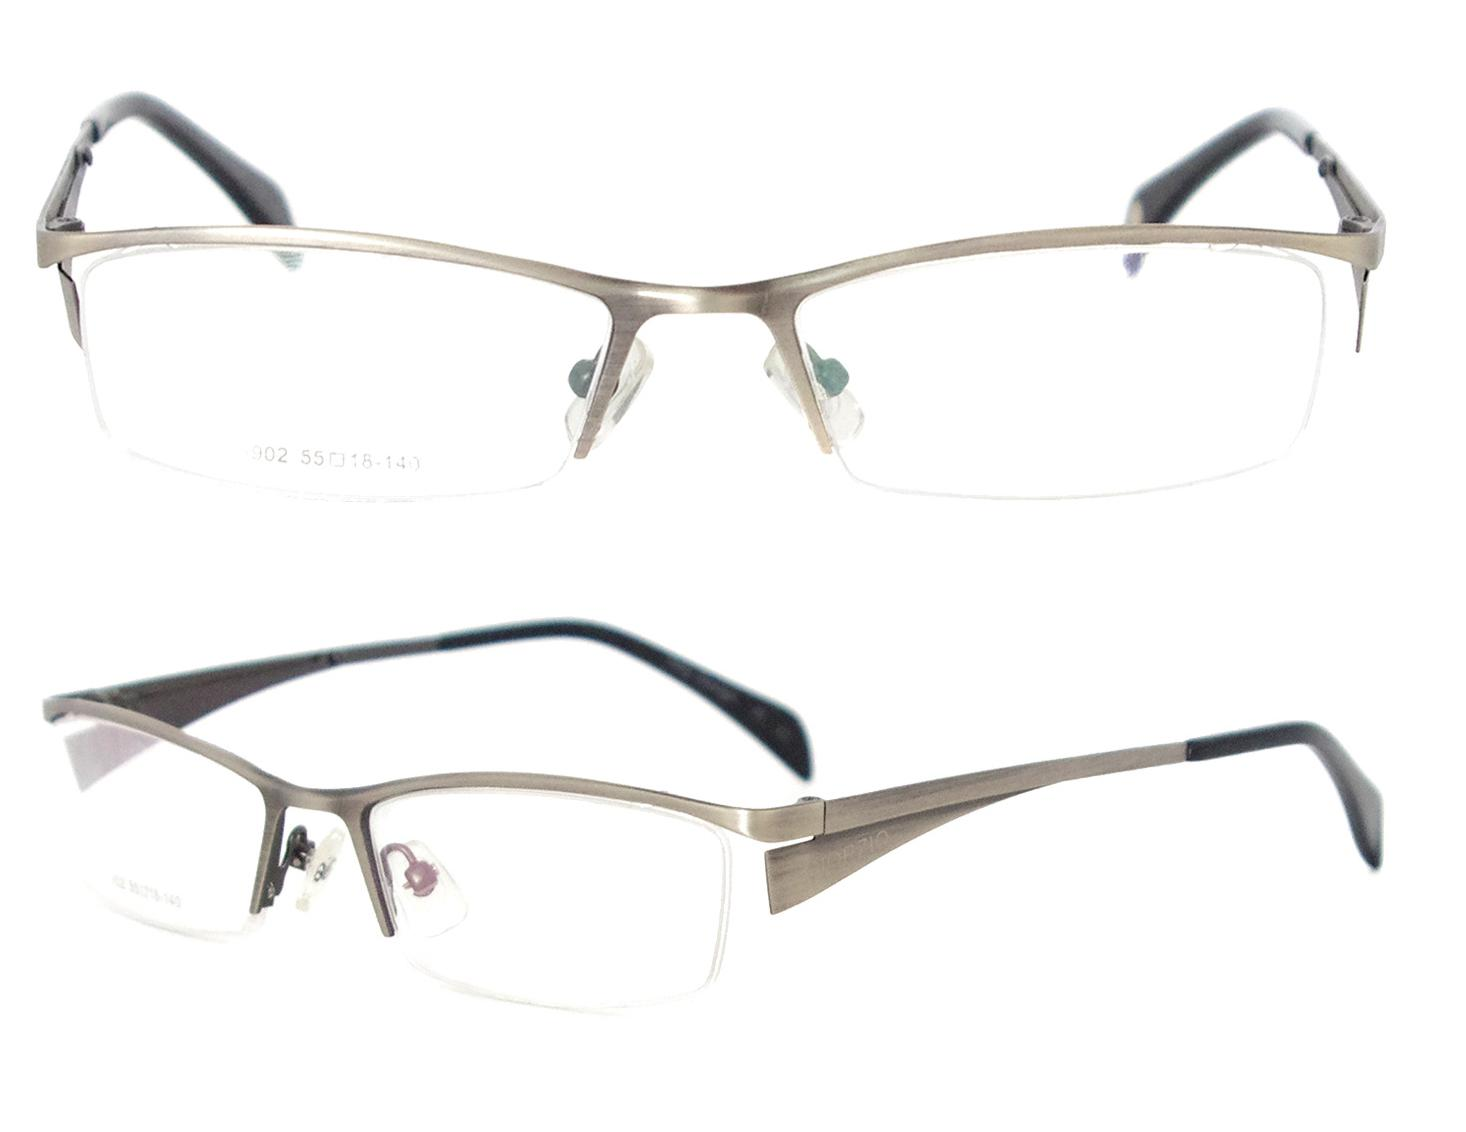 f3c0f75e763 Metal Alloy 10pcs wholesale high quality half rim men framesEyeglasses Frame  Frames For Glasses .